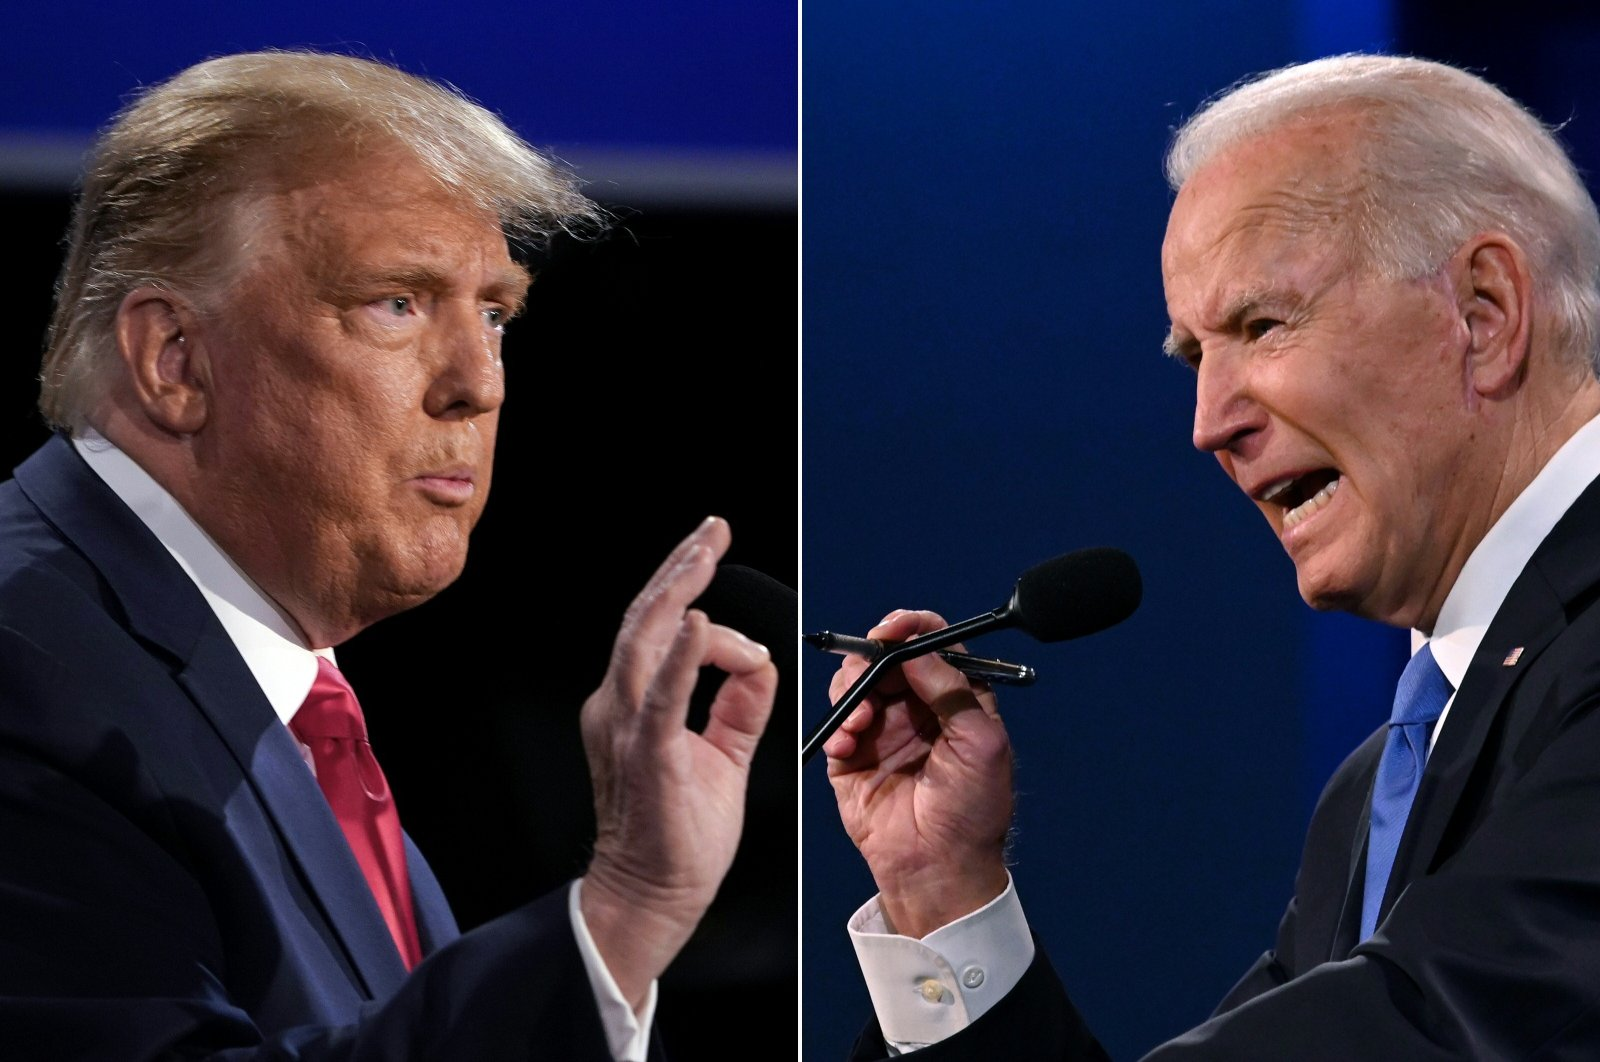 A file combination of pictures showing U.S. President Donald Trump (L) and President-elect Joe Biden. (AFP Photo)